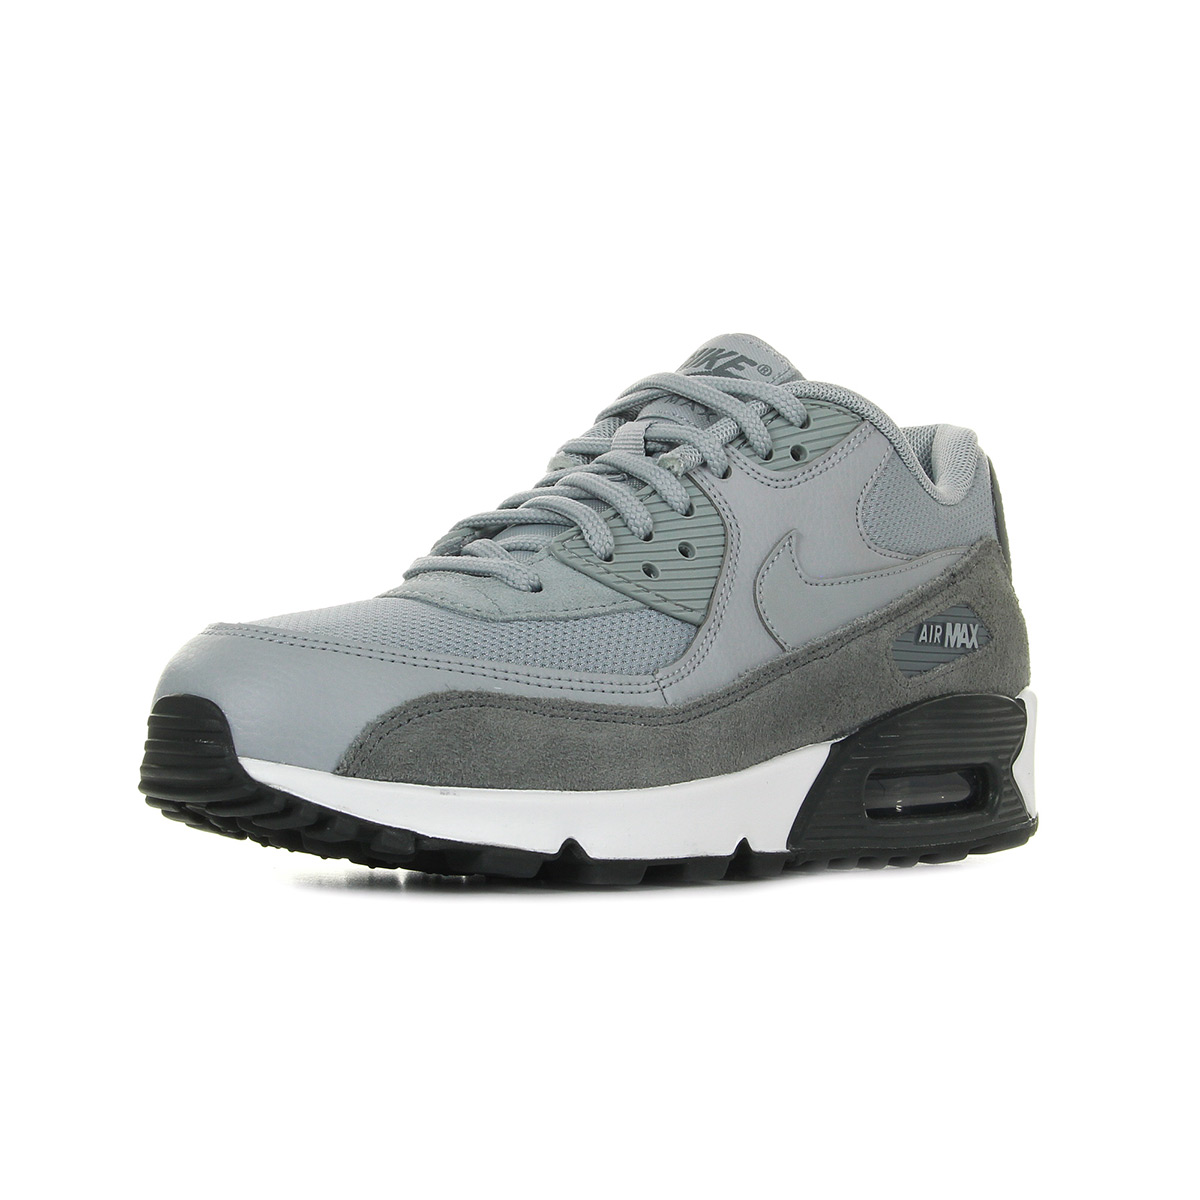 Chaussures Baskets Nike Unisexe Air Max 90 Taille Gris Grise Cuir